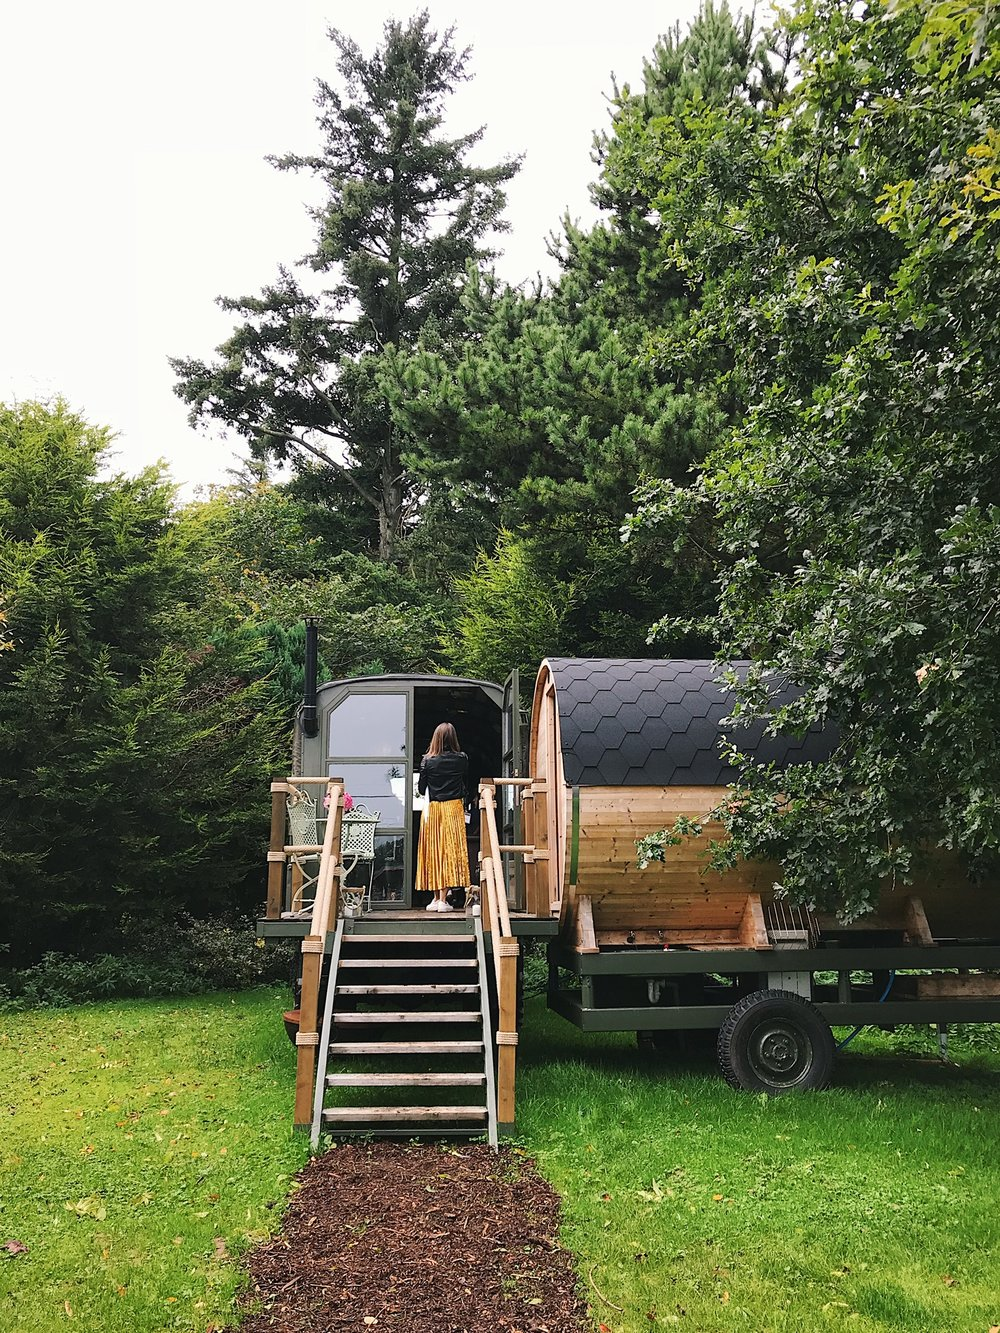 'Myrtle the glamping truck ( her own sauna included! )